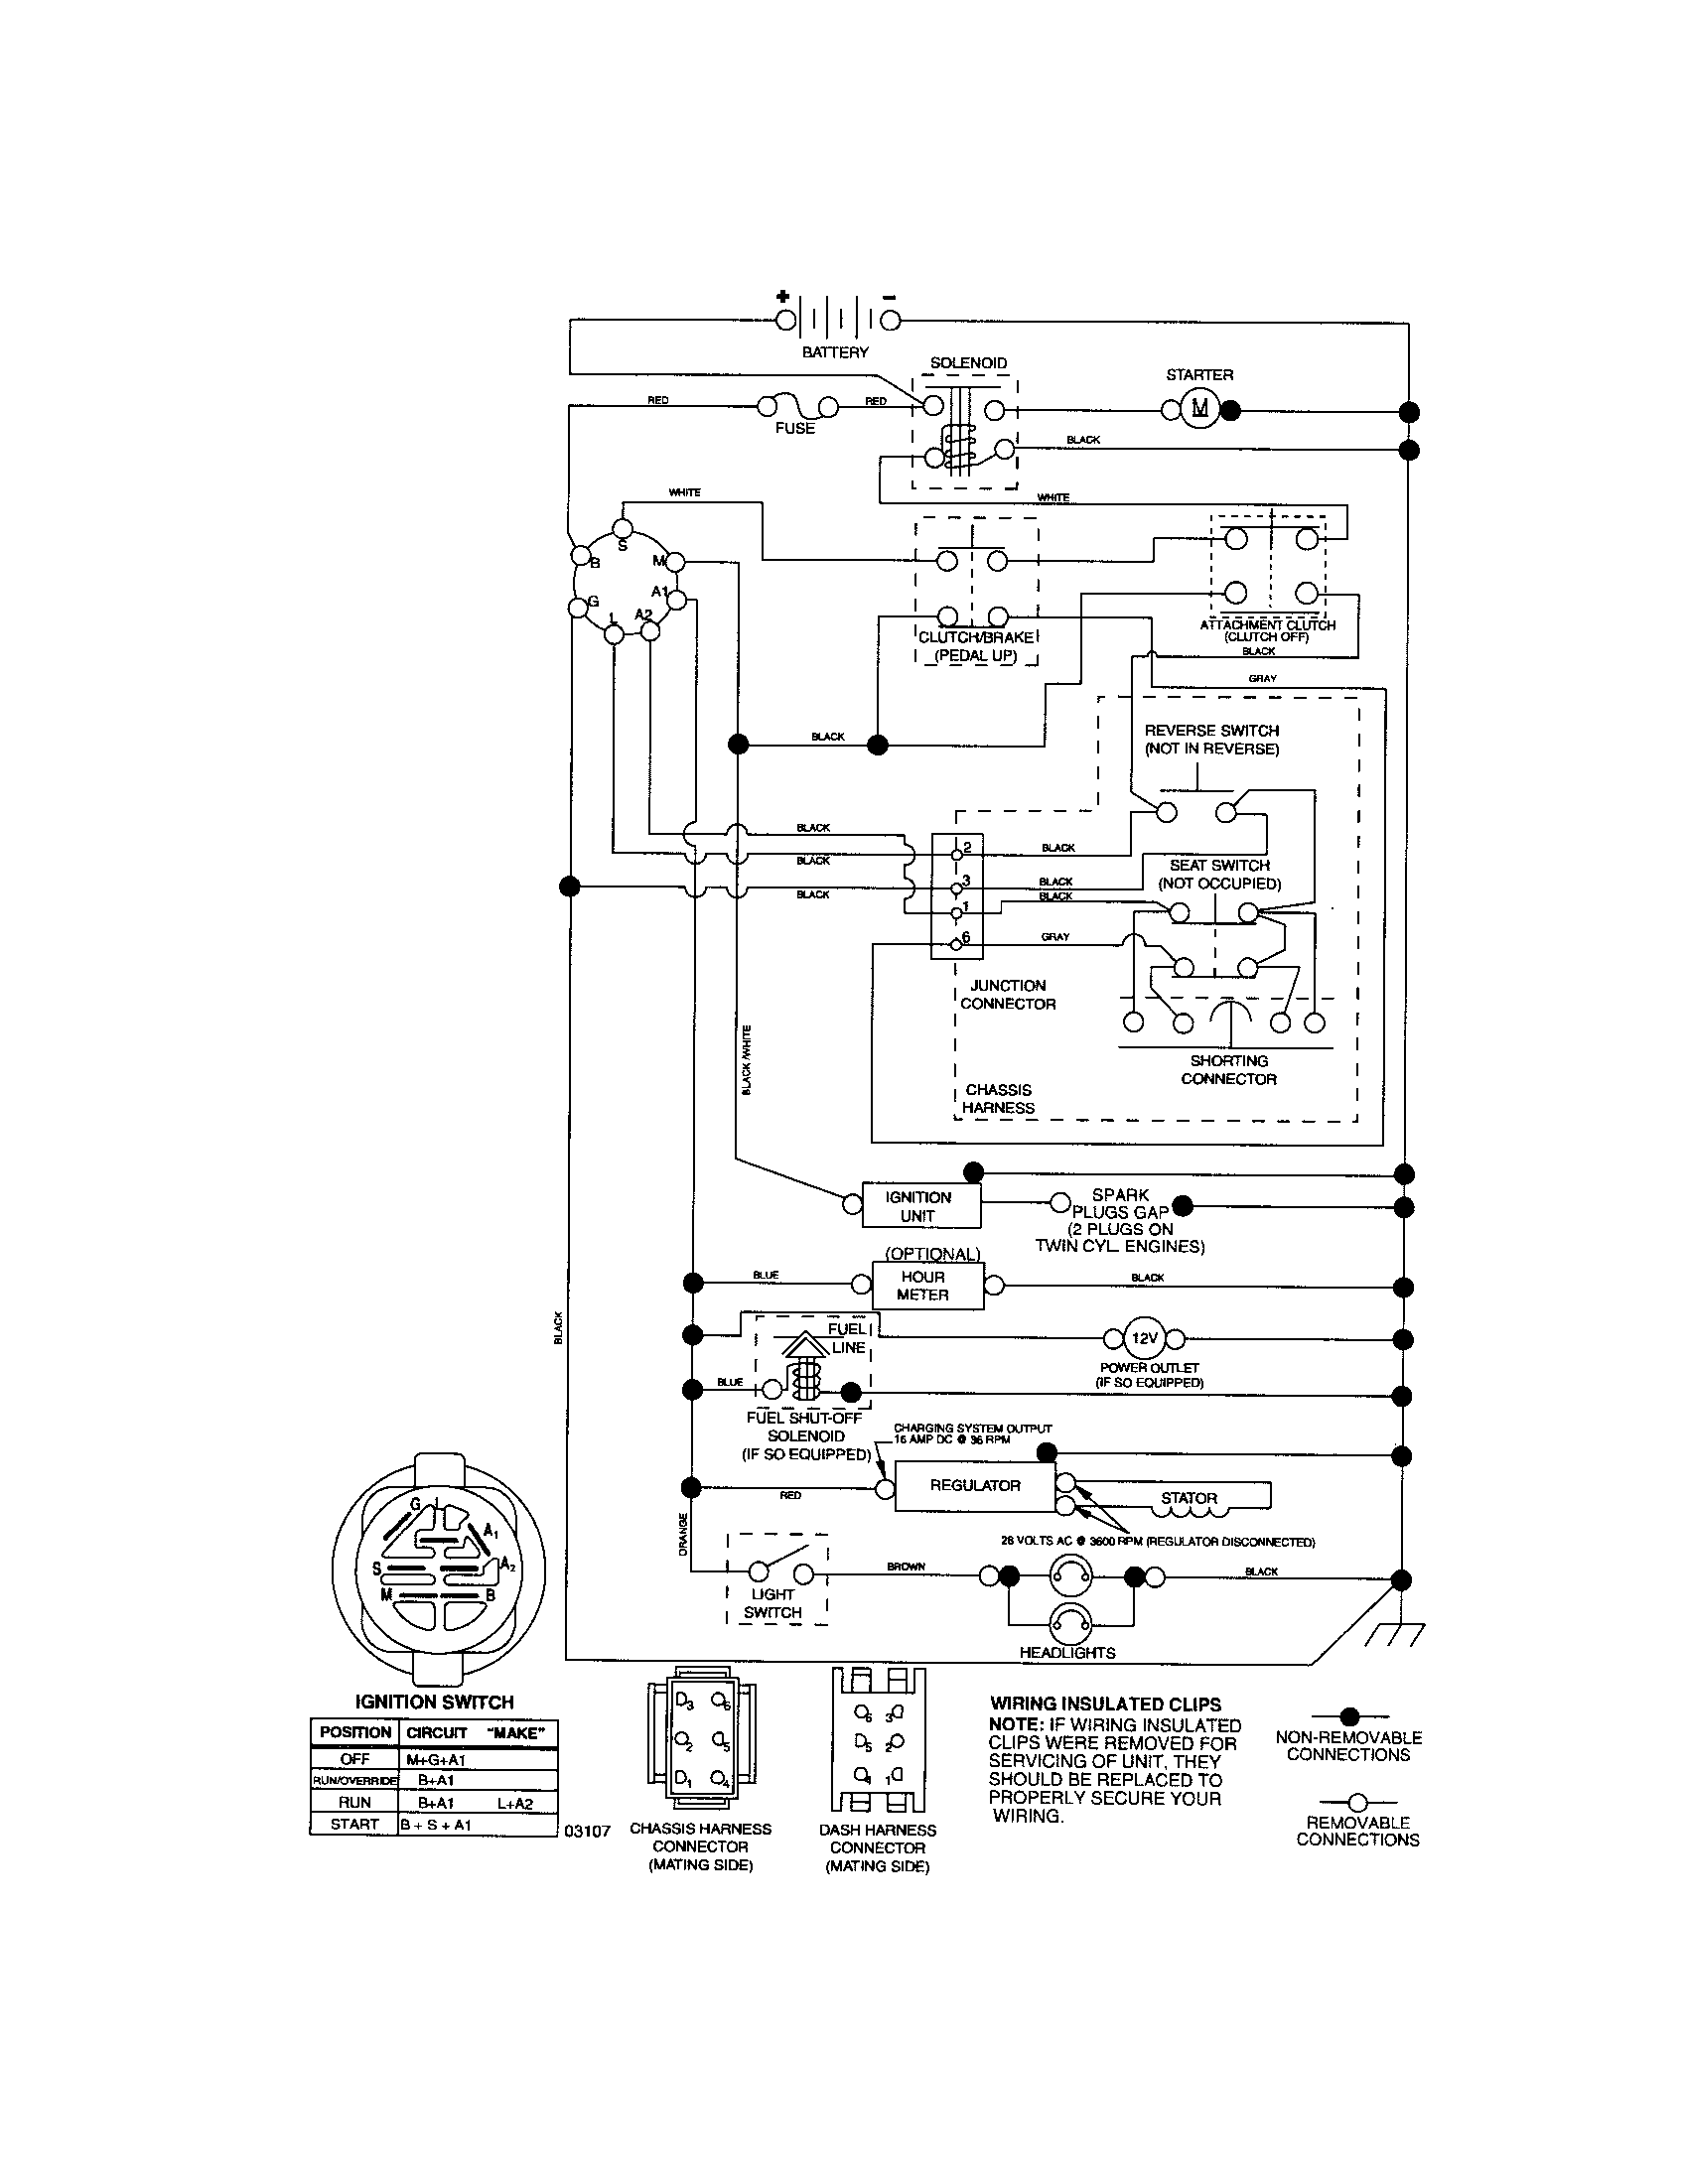 6af5f1447fd13c8443376822ddc1e105 craftsman riding mower electrical diagram wiring diagram briggs and stratton starter solenoid wiring diagram at alyssarenee.co